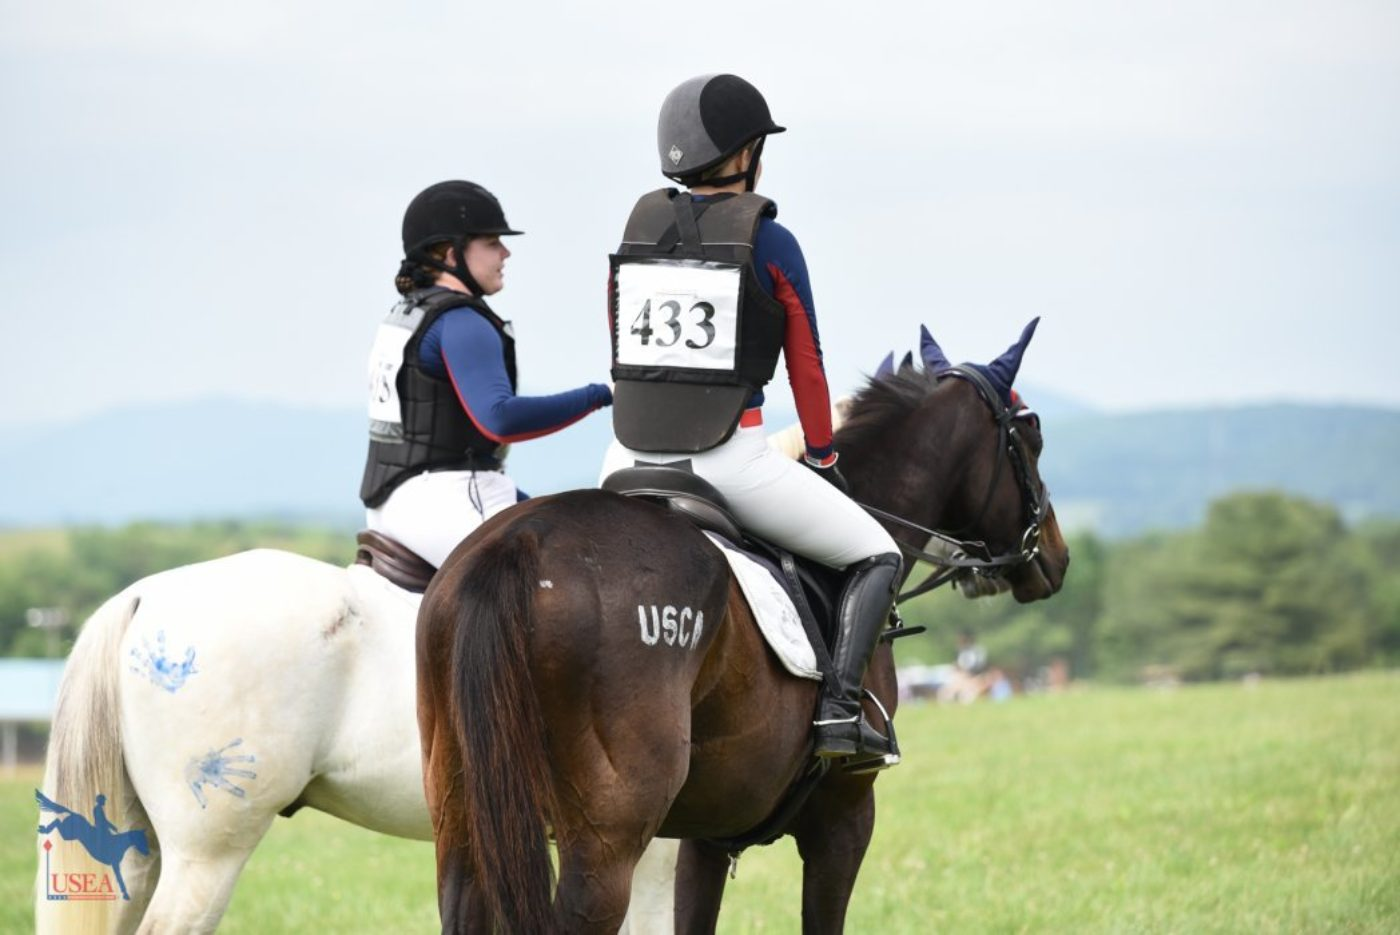 Brooke Webb and Bailey Hamilton of USC Aiken having a pre-cross-country pep talk. USEA/Jessica Duffy Photo.